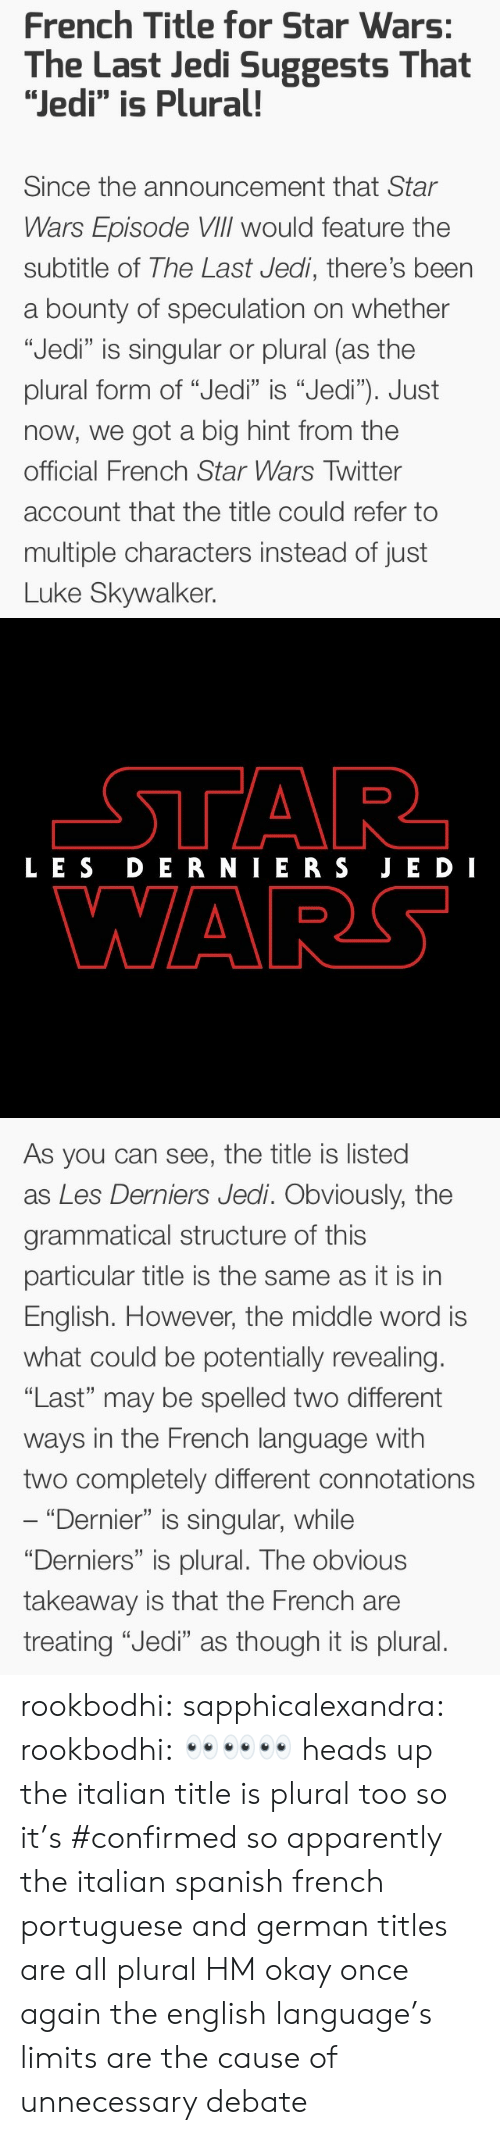 """grammatical: French Title for Star Wars:  The Last Jedi Suggests That  """"Jedi"""" is Plural!  Since the announcement that Star  Wars Episode VIlIl would feature the  subtitle of The Last Jedi, there's been  a bounty of speculation on whether  """"Jedi"""" is singular or plural (as the  plural form of """"Jedi"""" is """"Jedi""""). Just  now, we got a big hint from the  official French Star Wars Twitter  account that the title could refer to  multiple characters instead of just  Luke Skywalker.   LES DERNIERS JE DI  WARS   As you can see, the title is listed  as Les Derniers Jedi. Obviously, the  grammatical structure of this  particular title is the same as it is in  English. However, the middle word is  what could be potentially revealing.  """"Last"""" may be spelled two different  ways in the French language with  two completely different connotations  """"Dernier"""" is singular, while  """"Derniers"""" is plural. The obvious  takeaway is that the French are  treating """"Jedi"""" as though it is plural. rookbodhi:  sapphicalexandra:  rookbodhi: 👀👀👀 heads up the italian title is plural too so it's #confirmed  so apparently the italian spanish french portuguese and german titles are all plural HM okay once again the english language's limits are the cause of unnecessary debate"""